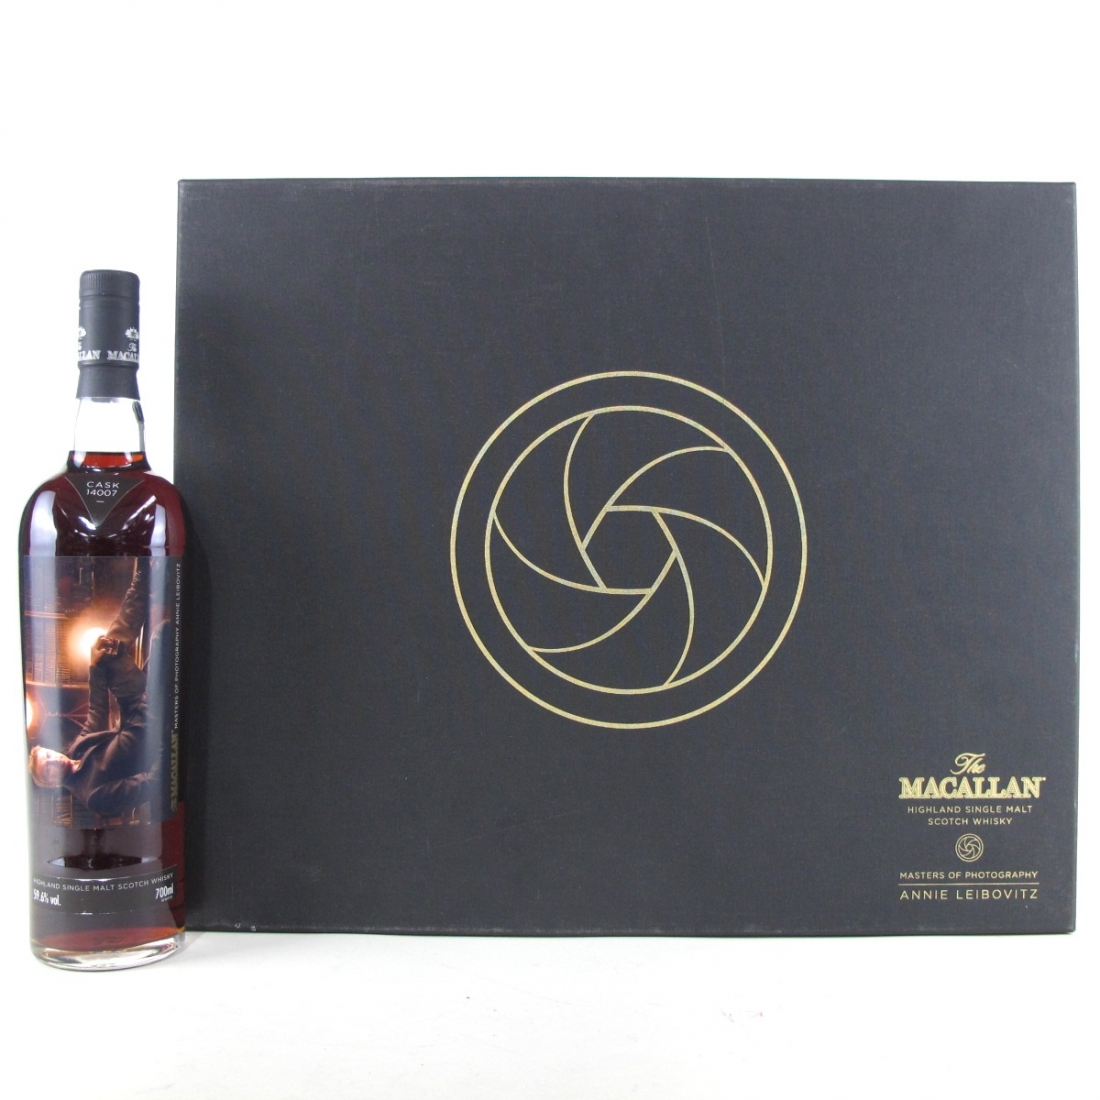 Macallan 1995 Masters of Photography Annie Leibovitz 'The Library' / Single Cask #14007